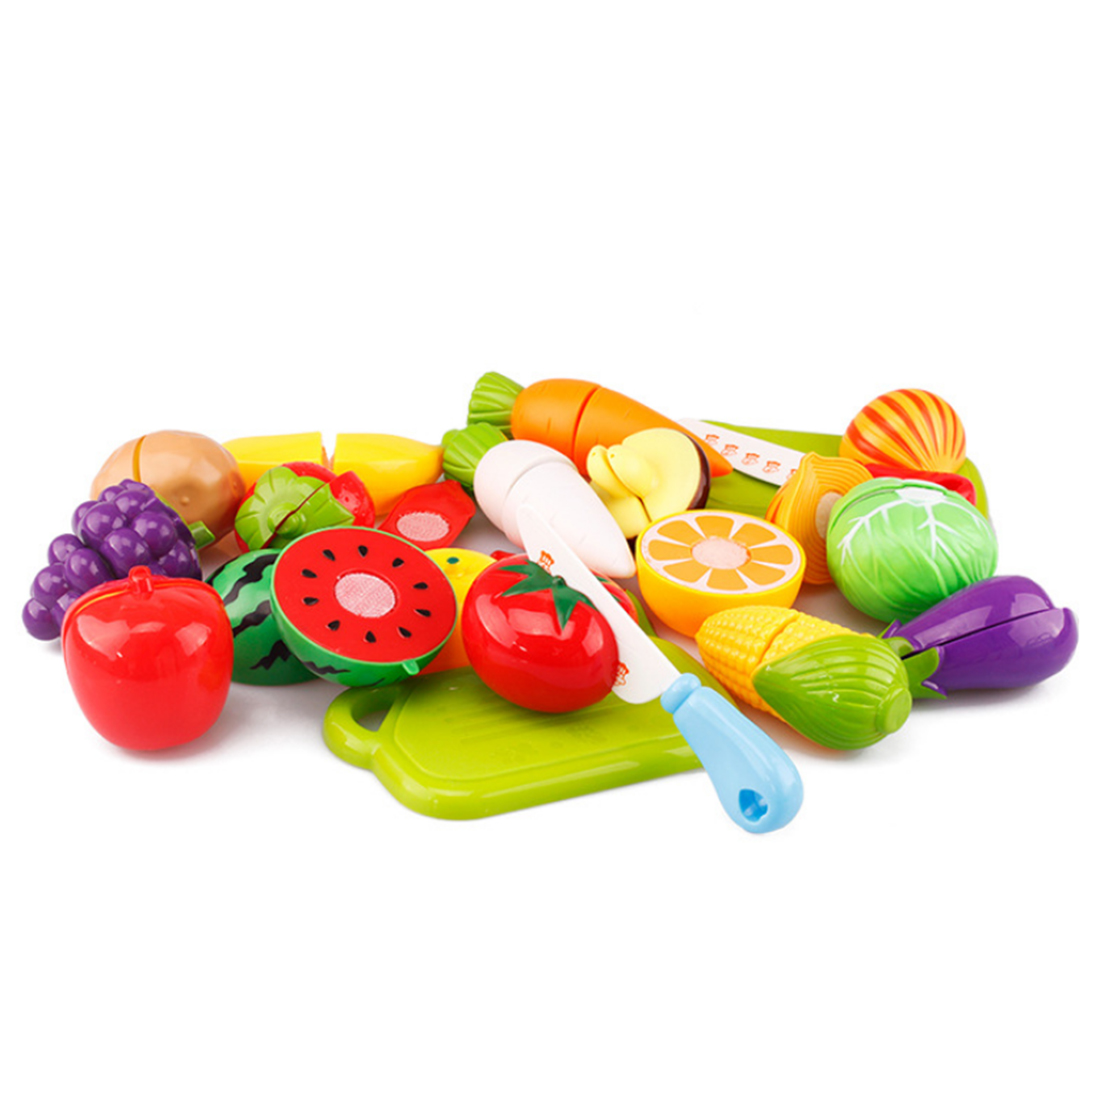 20Pcs/Set Plastic Fruit & Vegetables Cutting Toy Early Development and Education Toy for Kids - Color Random